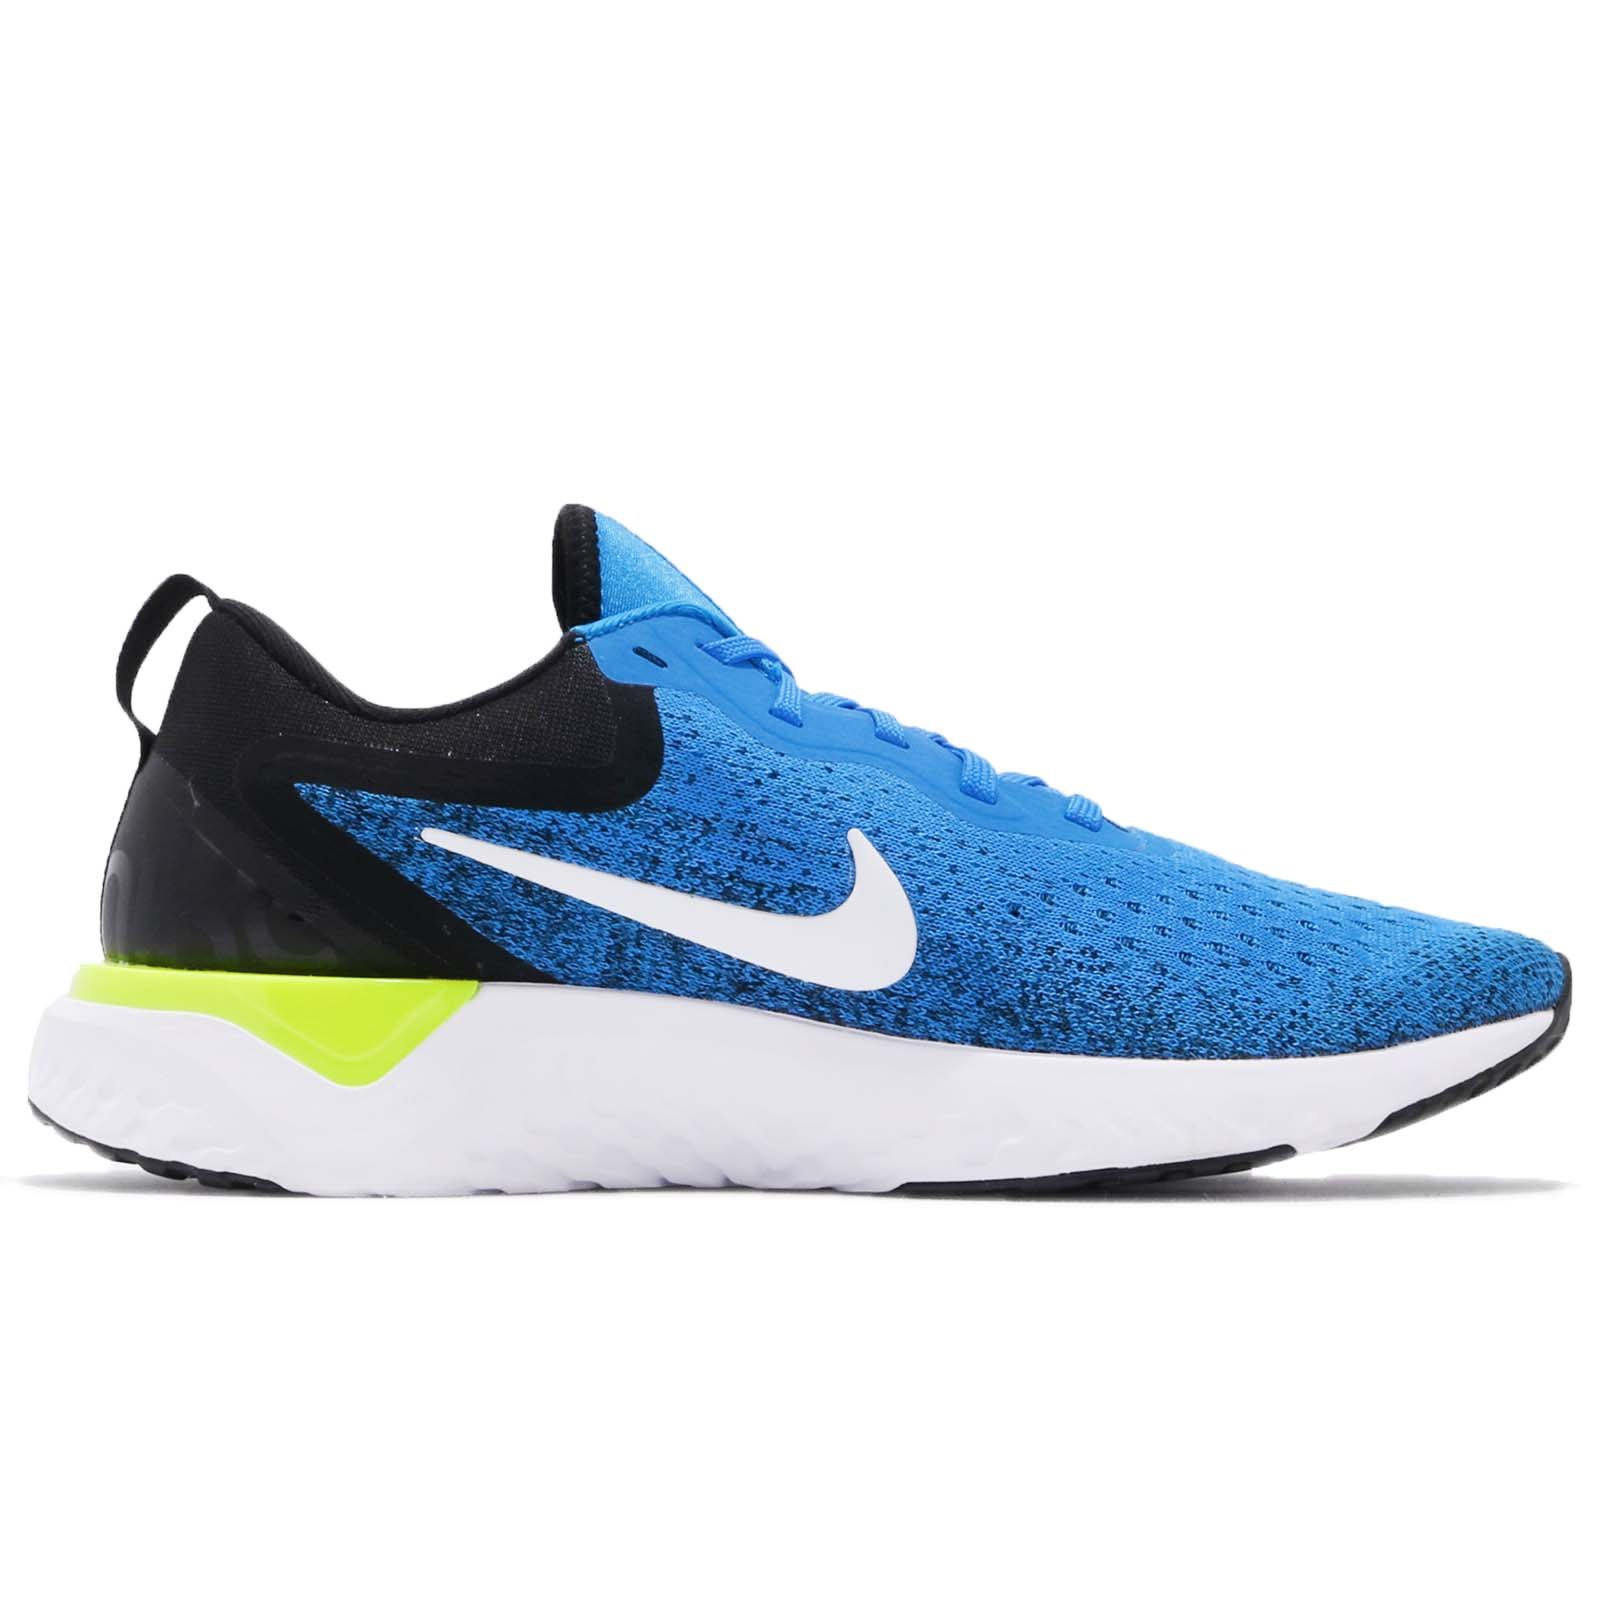 Nike Men's Odyssey React Running Shoes (7.5, Photo Blue/Black) by Nike (Image #2)